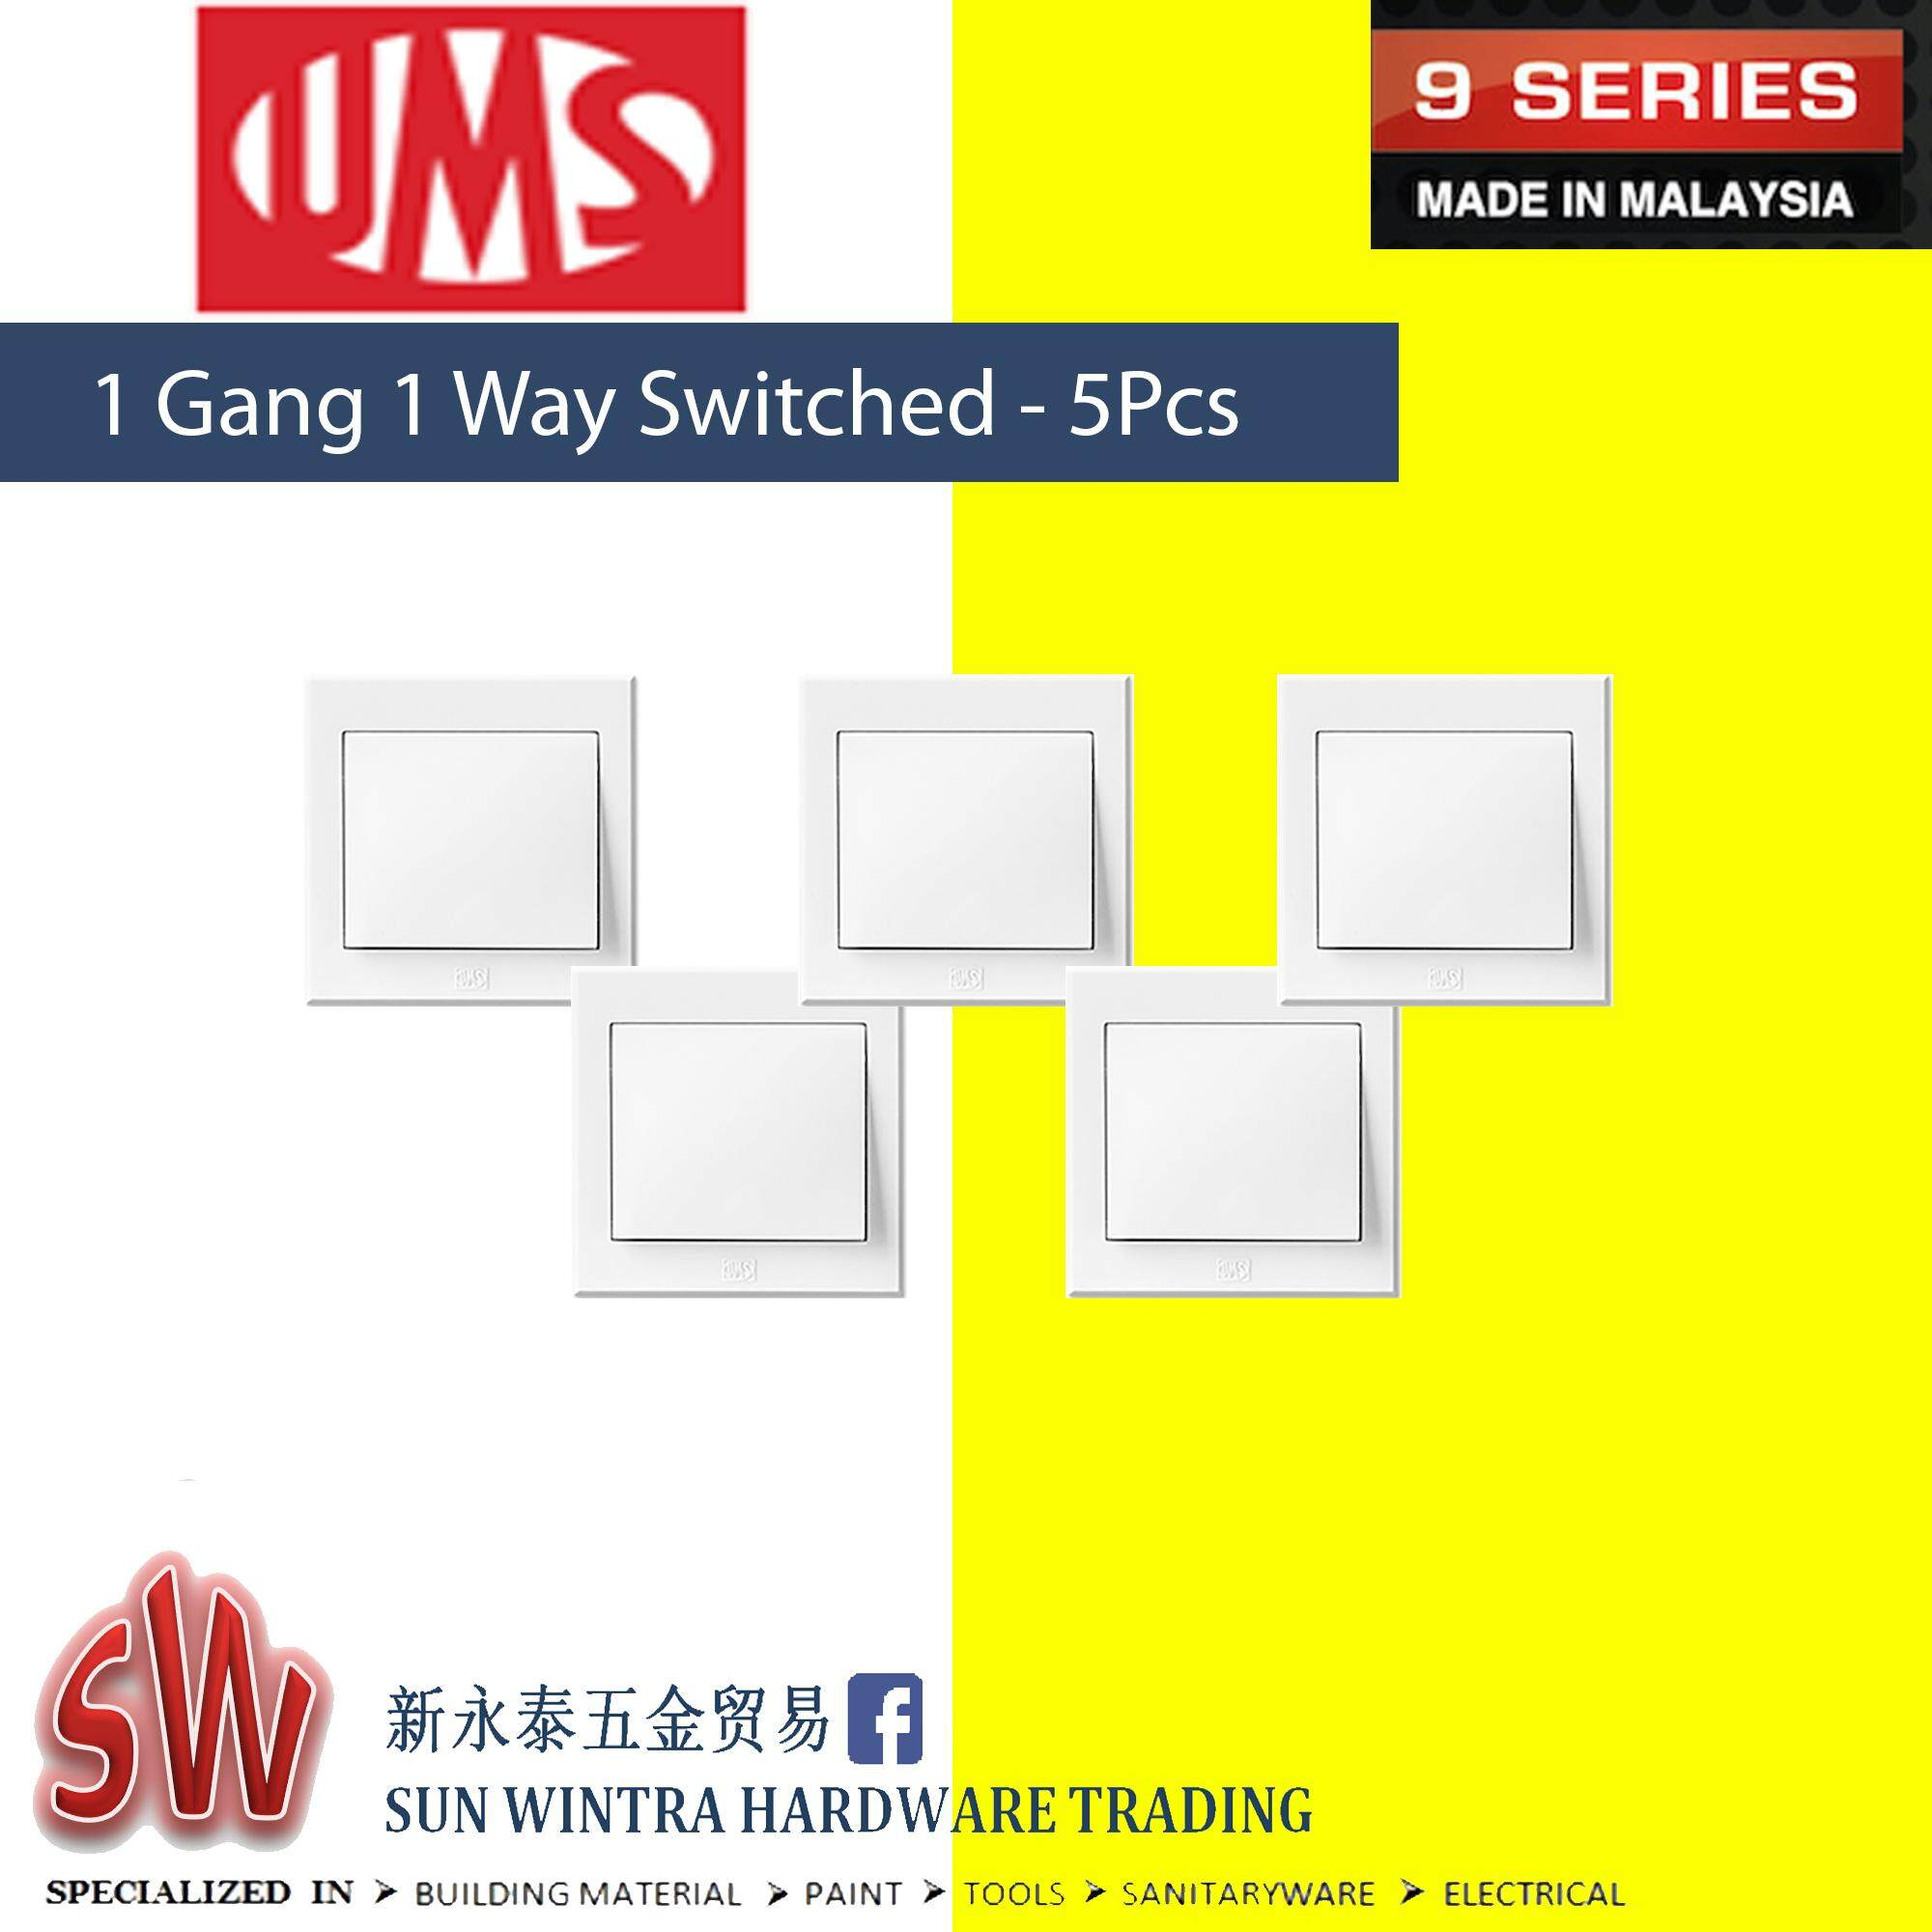 UMS 9 Series 1 Gang 1 Way Switched 5Pcs